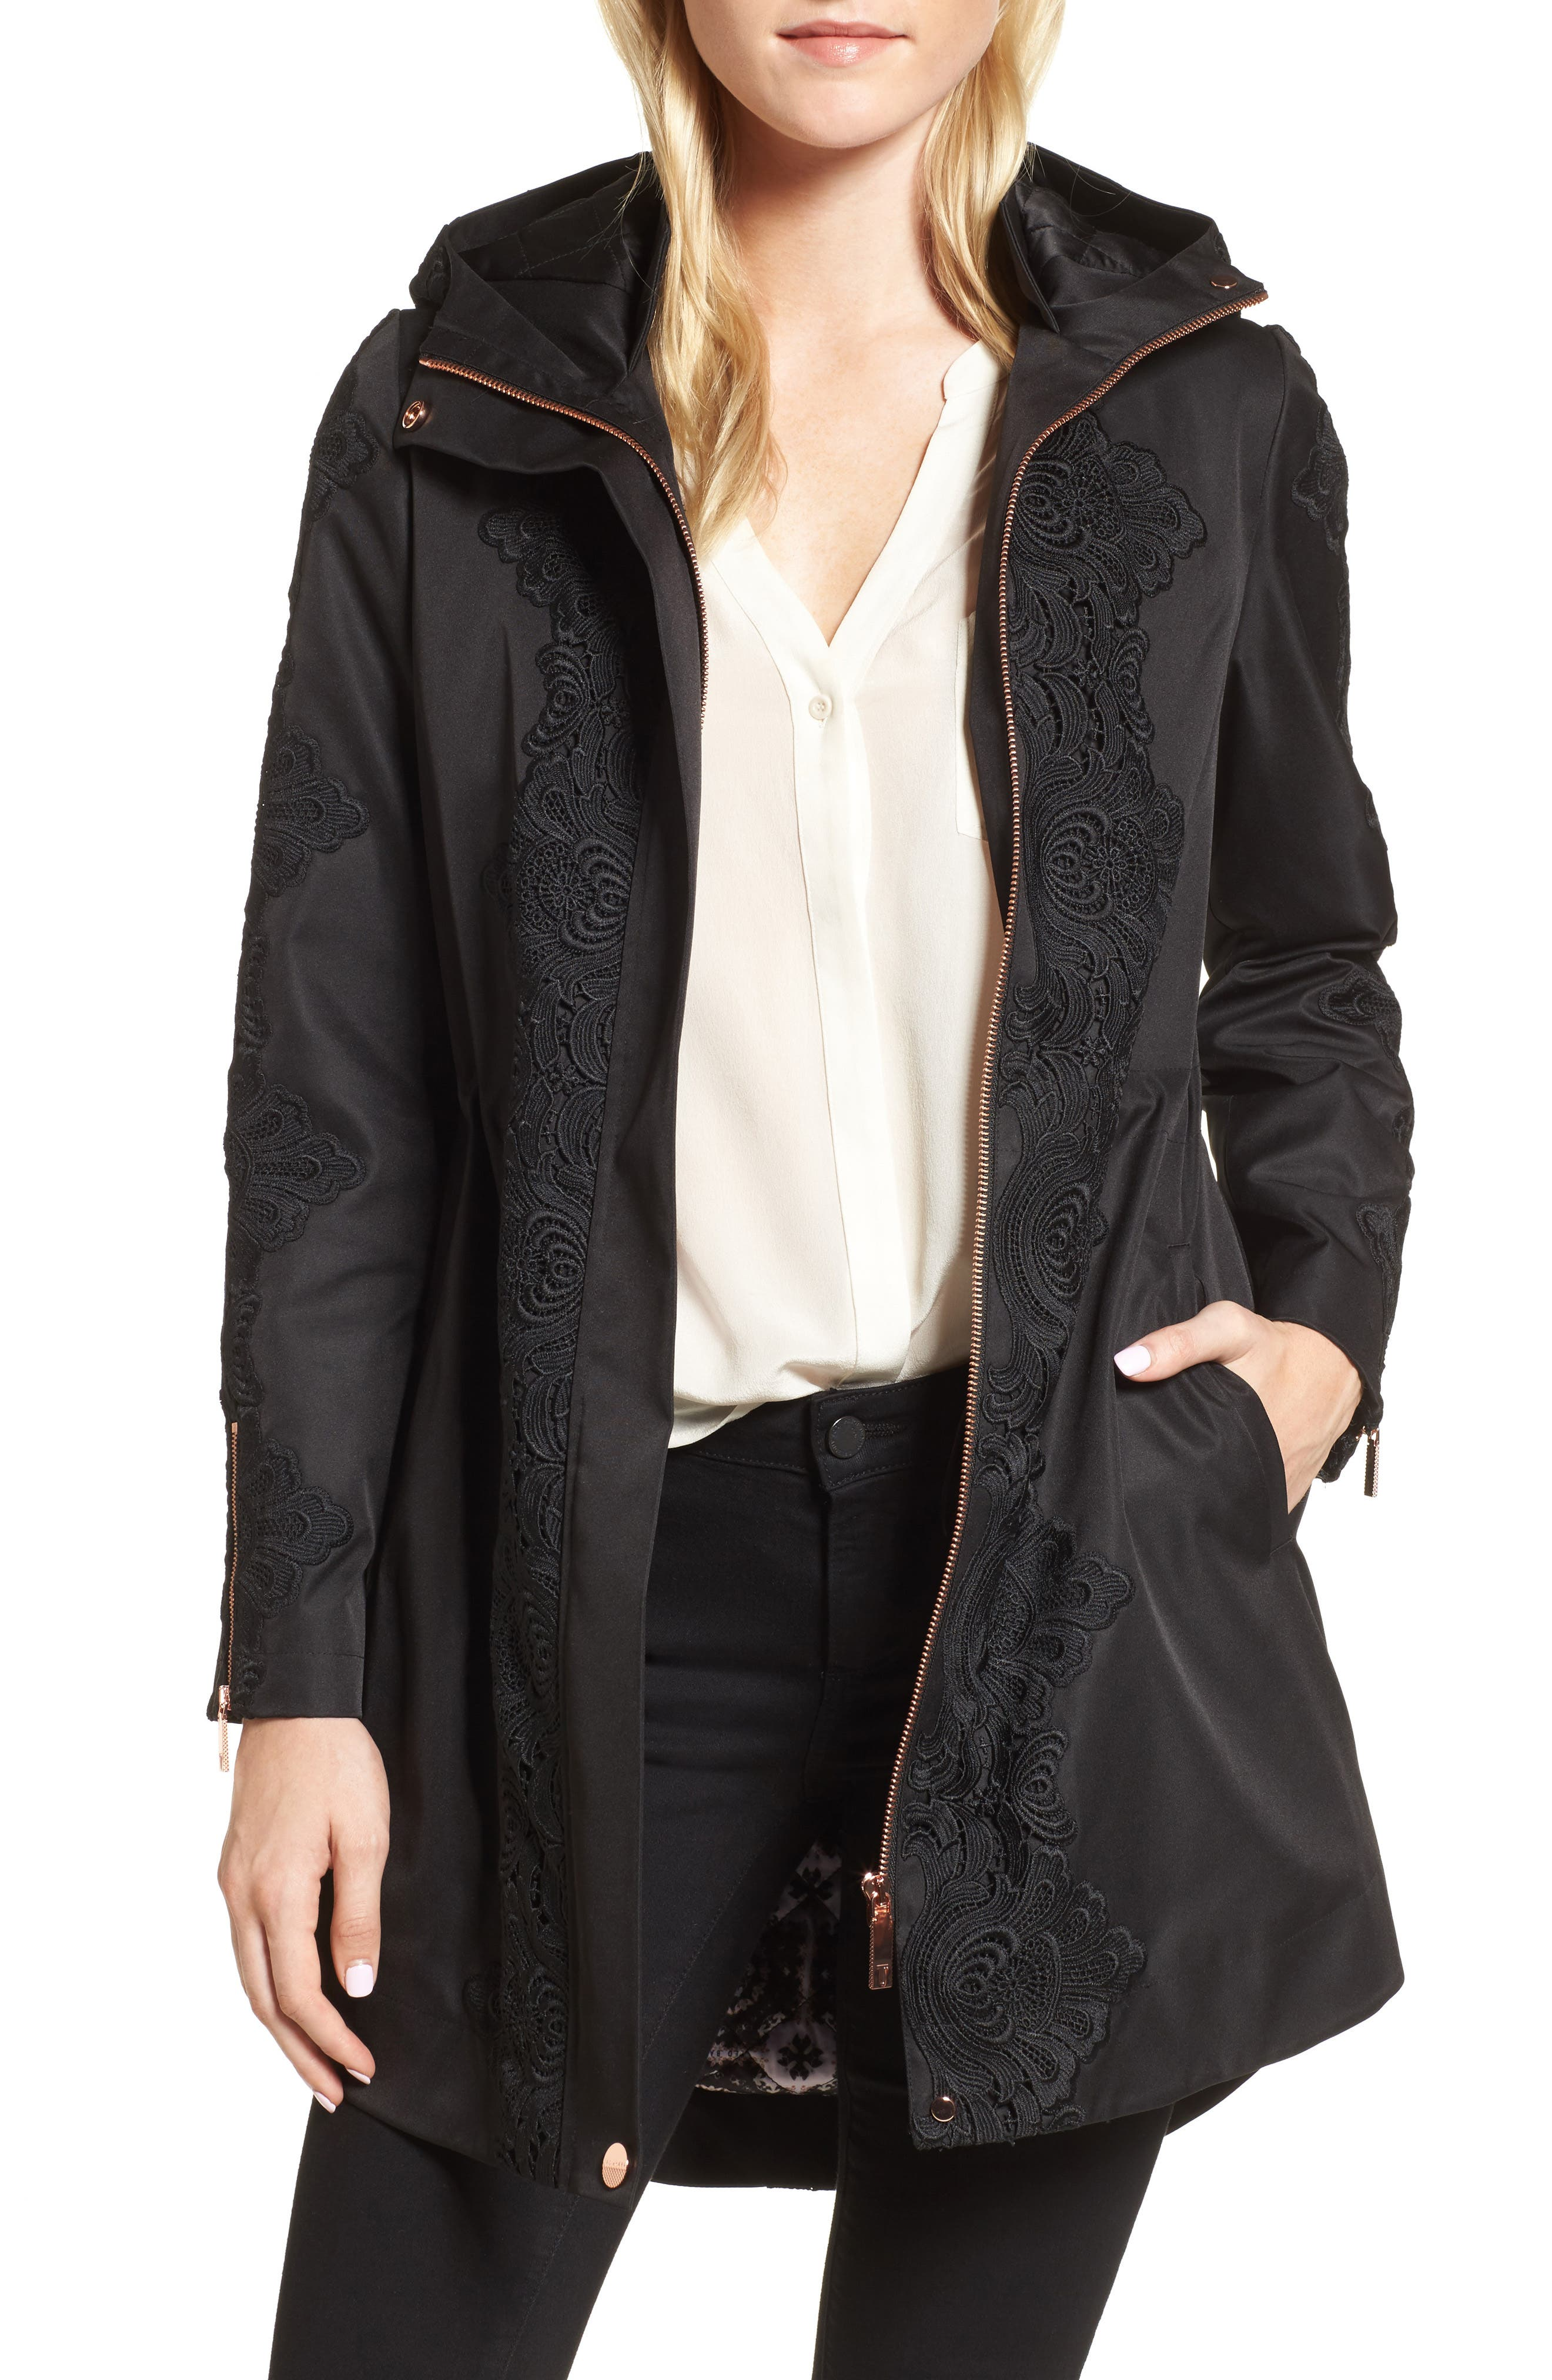 Alternate Image 1 Selected - Ted Baker London Lace Detail Anorak Jacket